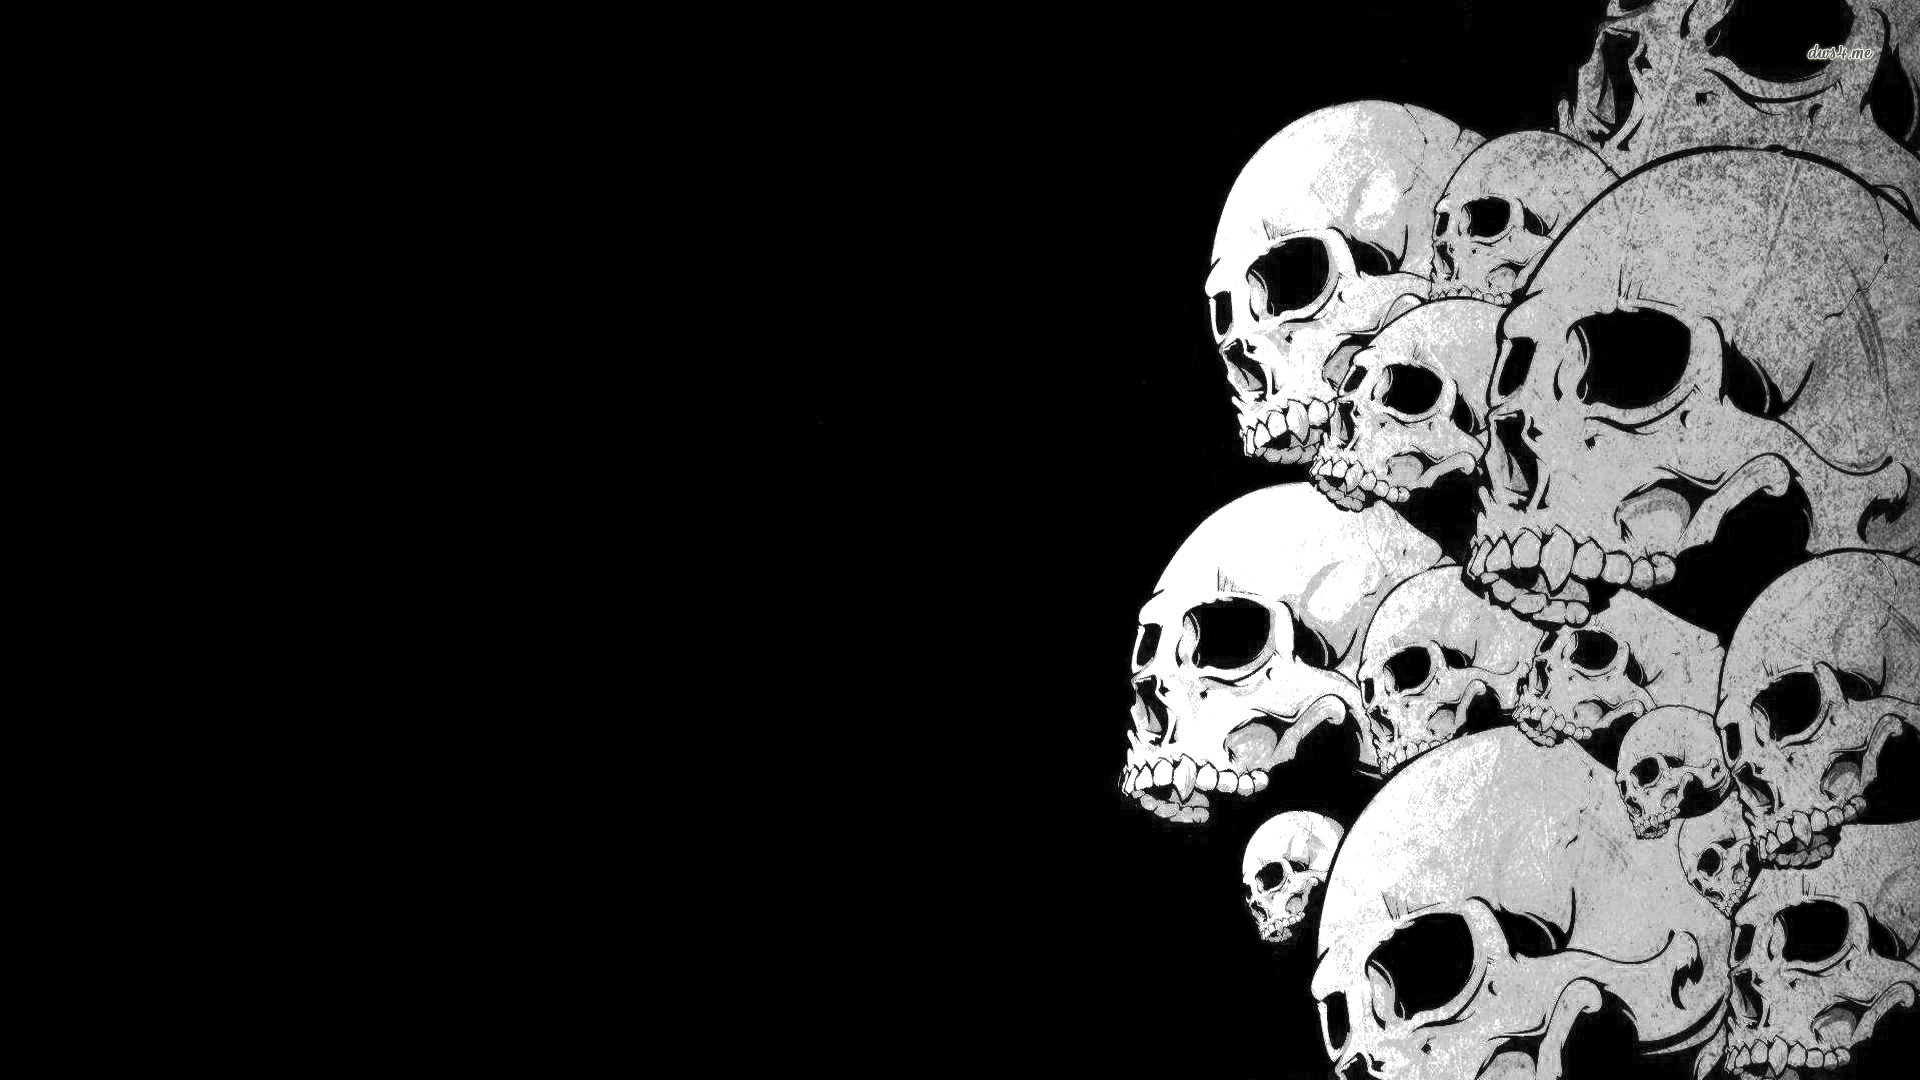 punisher hd widescreen wallpapers for laptop